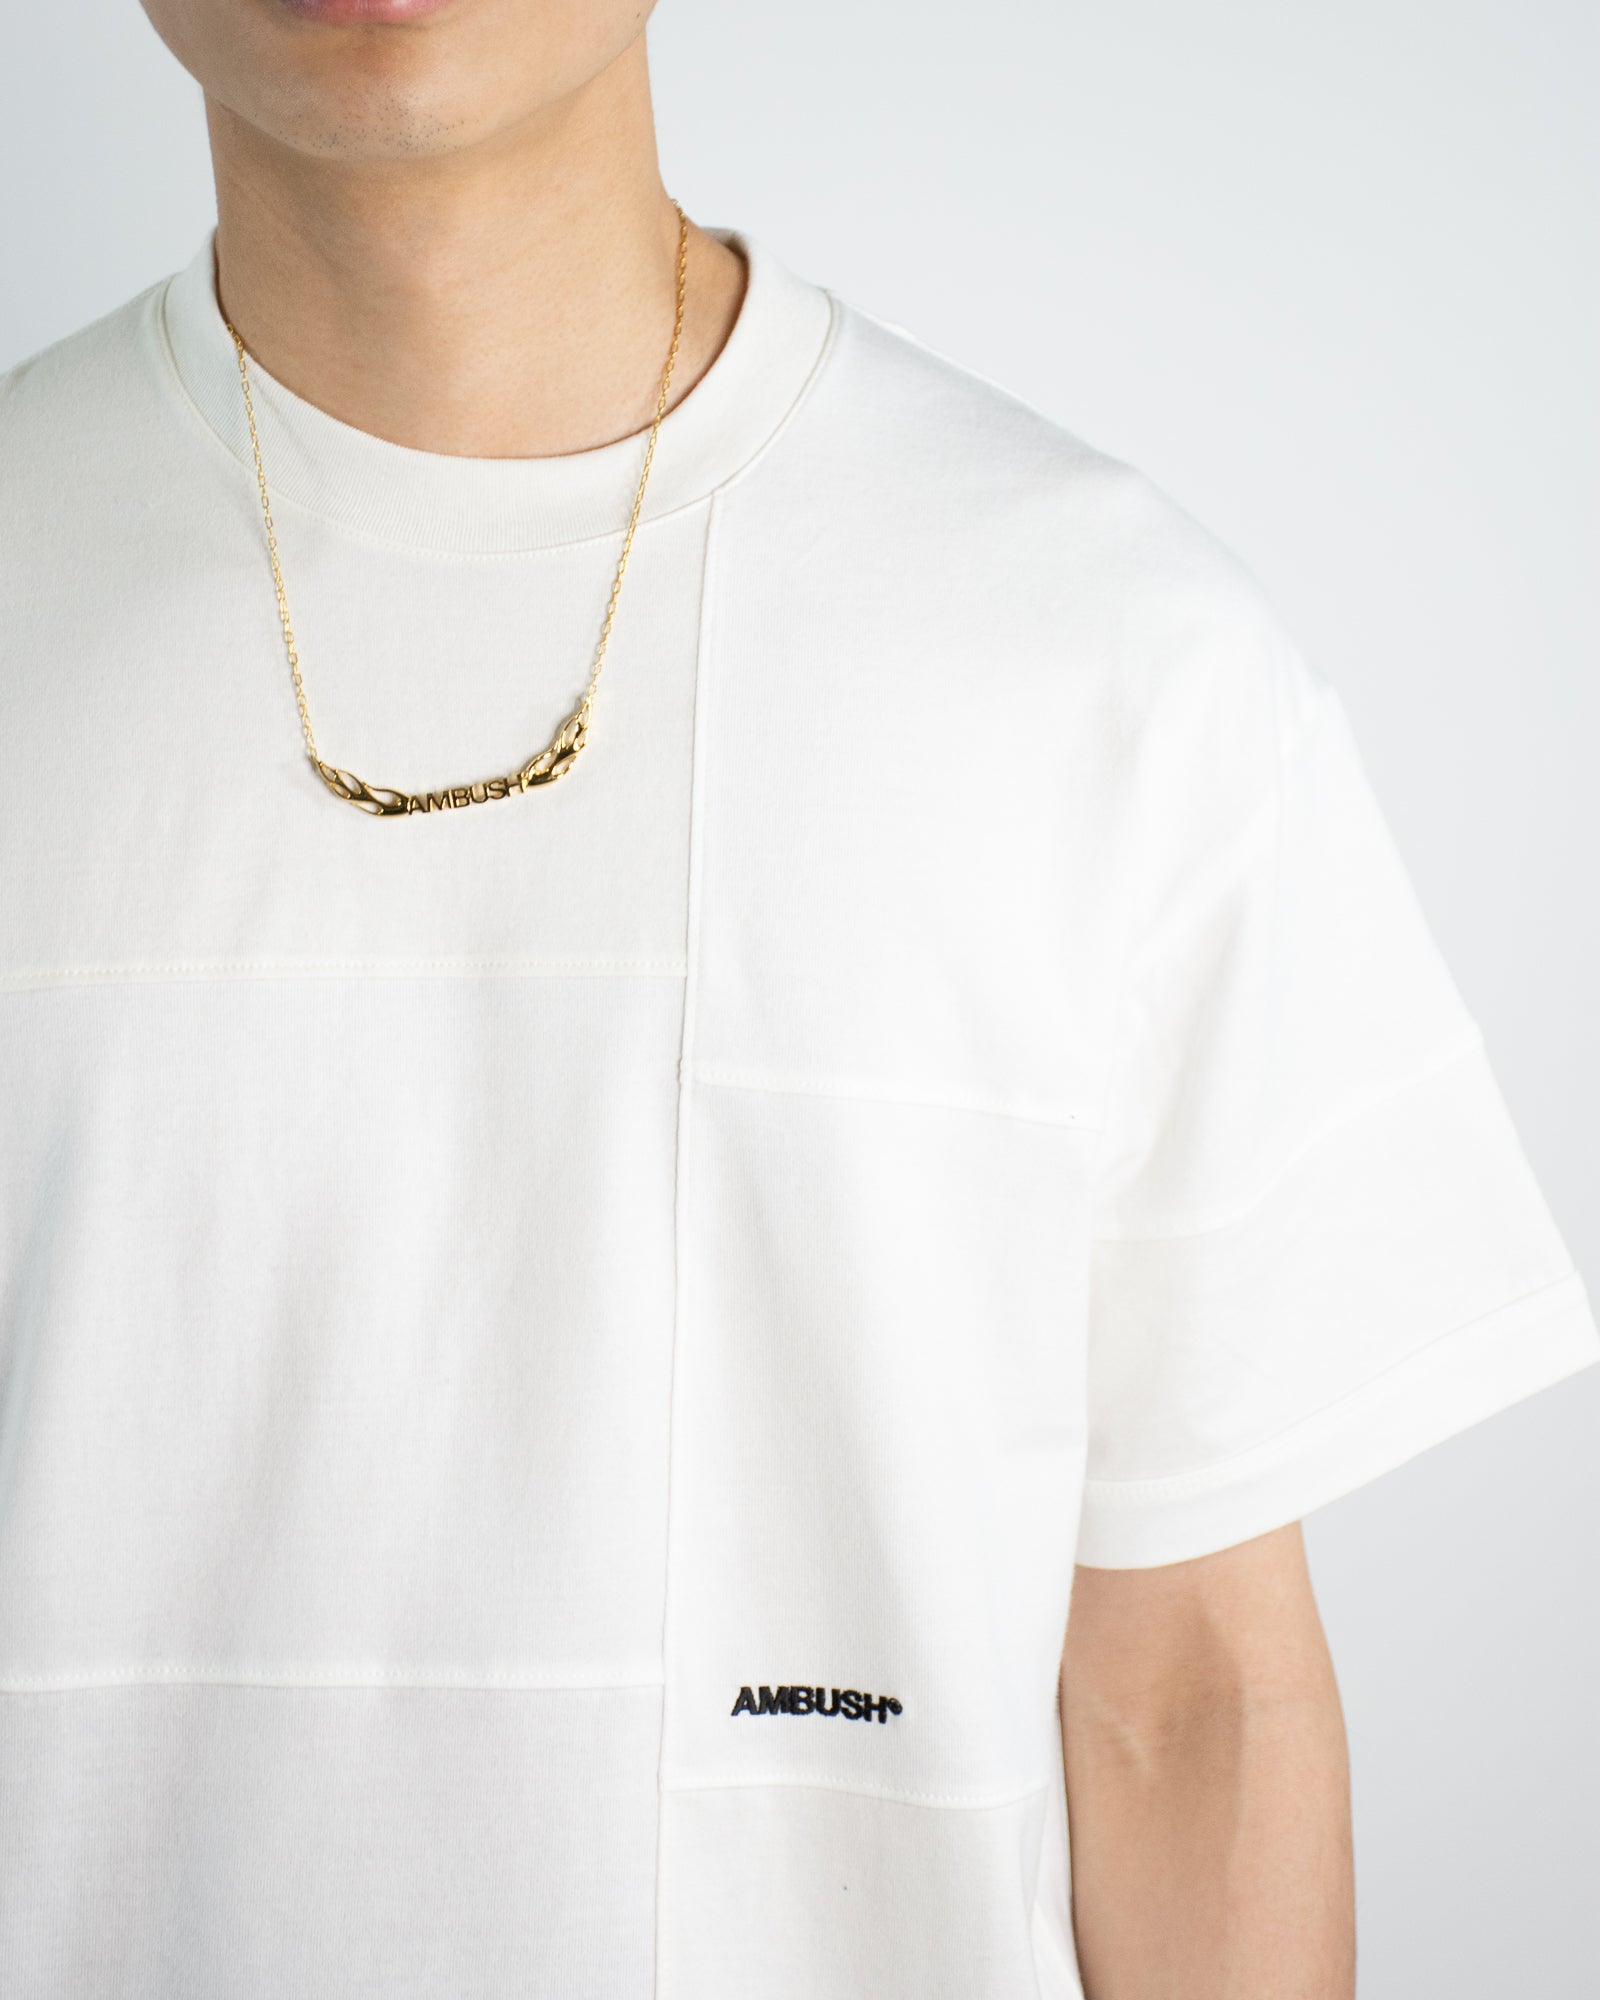 AMBUSH Flame Necklace